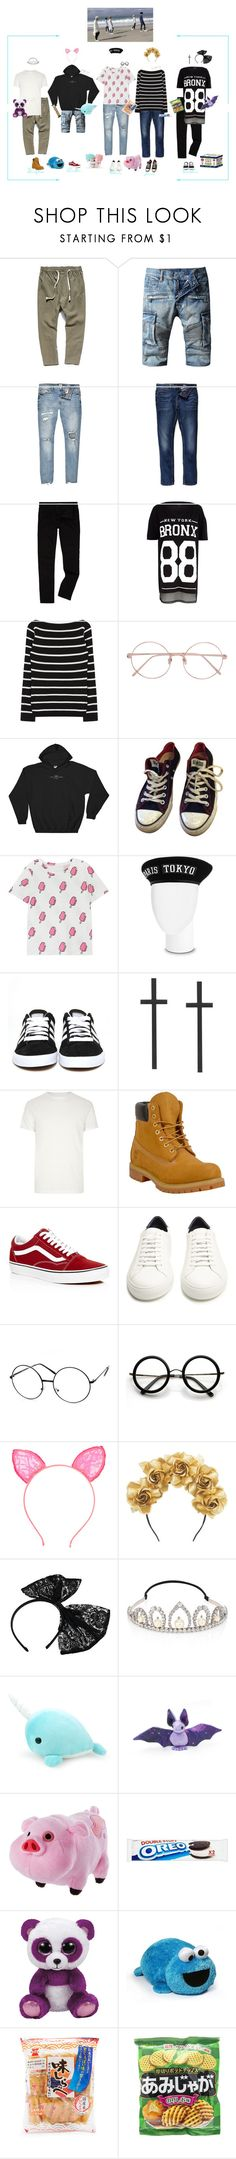 """""""PTX Busan Fansign"""" by purrfectas ❤ liked on Polyvore featuring River Island, Levi's, Linda Farrow, Converse, adidas, Timberland, Vans, Givenchy, ZeroUV and Maggie Mowbray Millinery"""